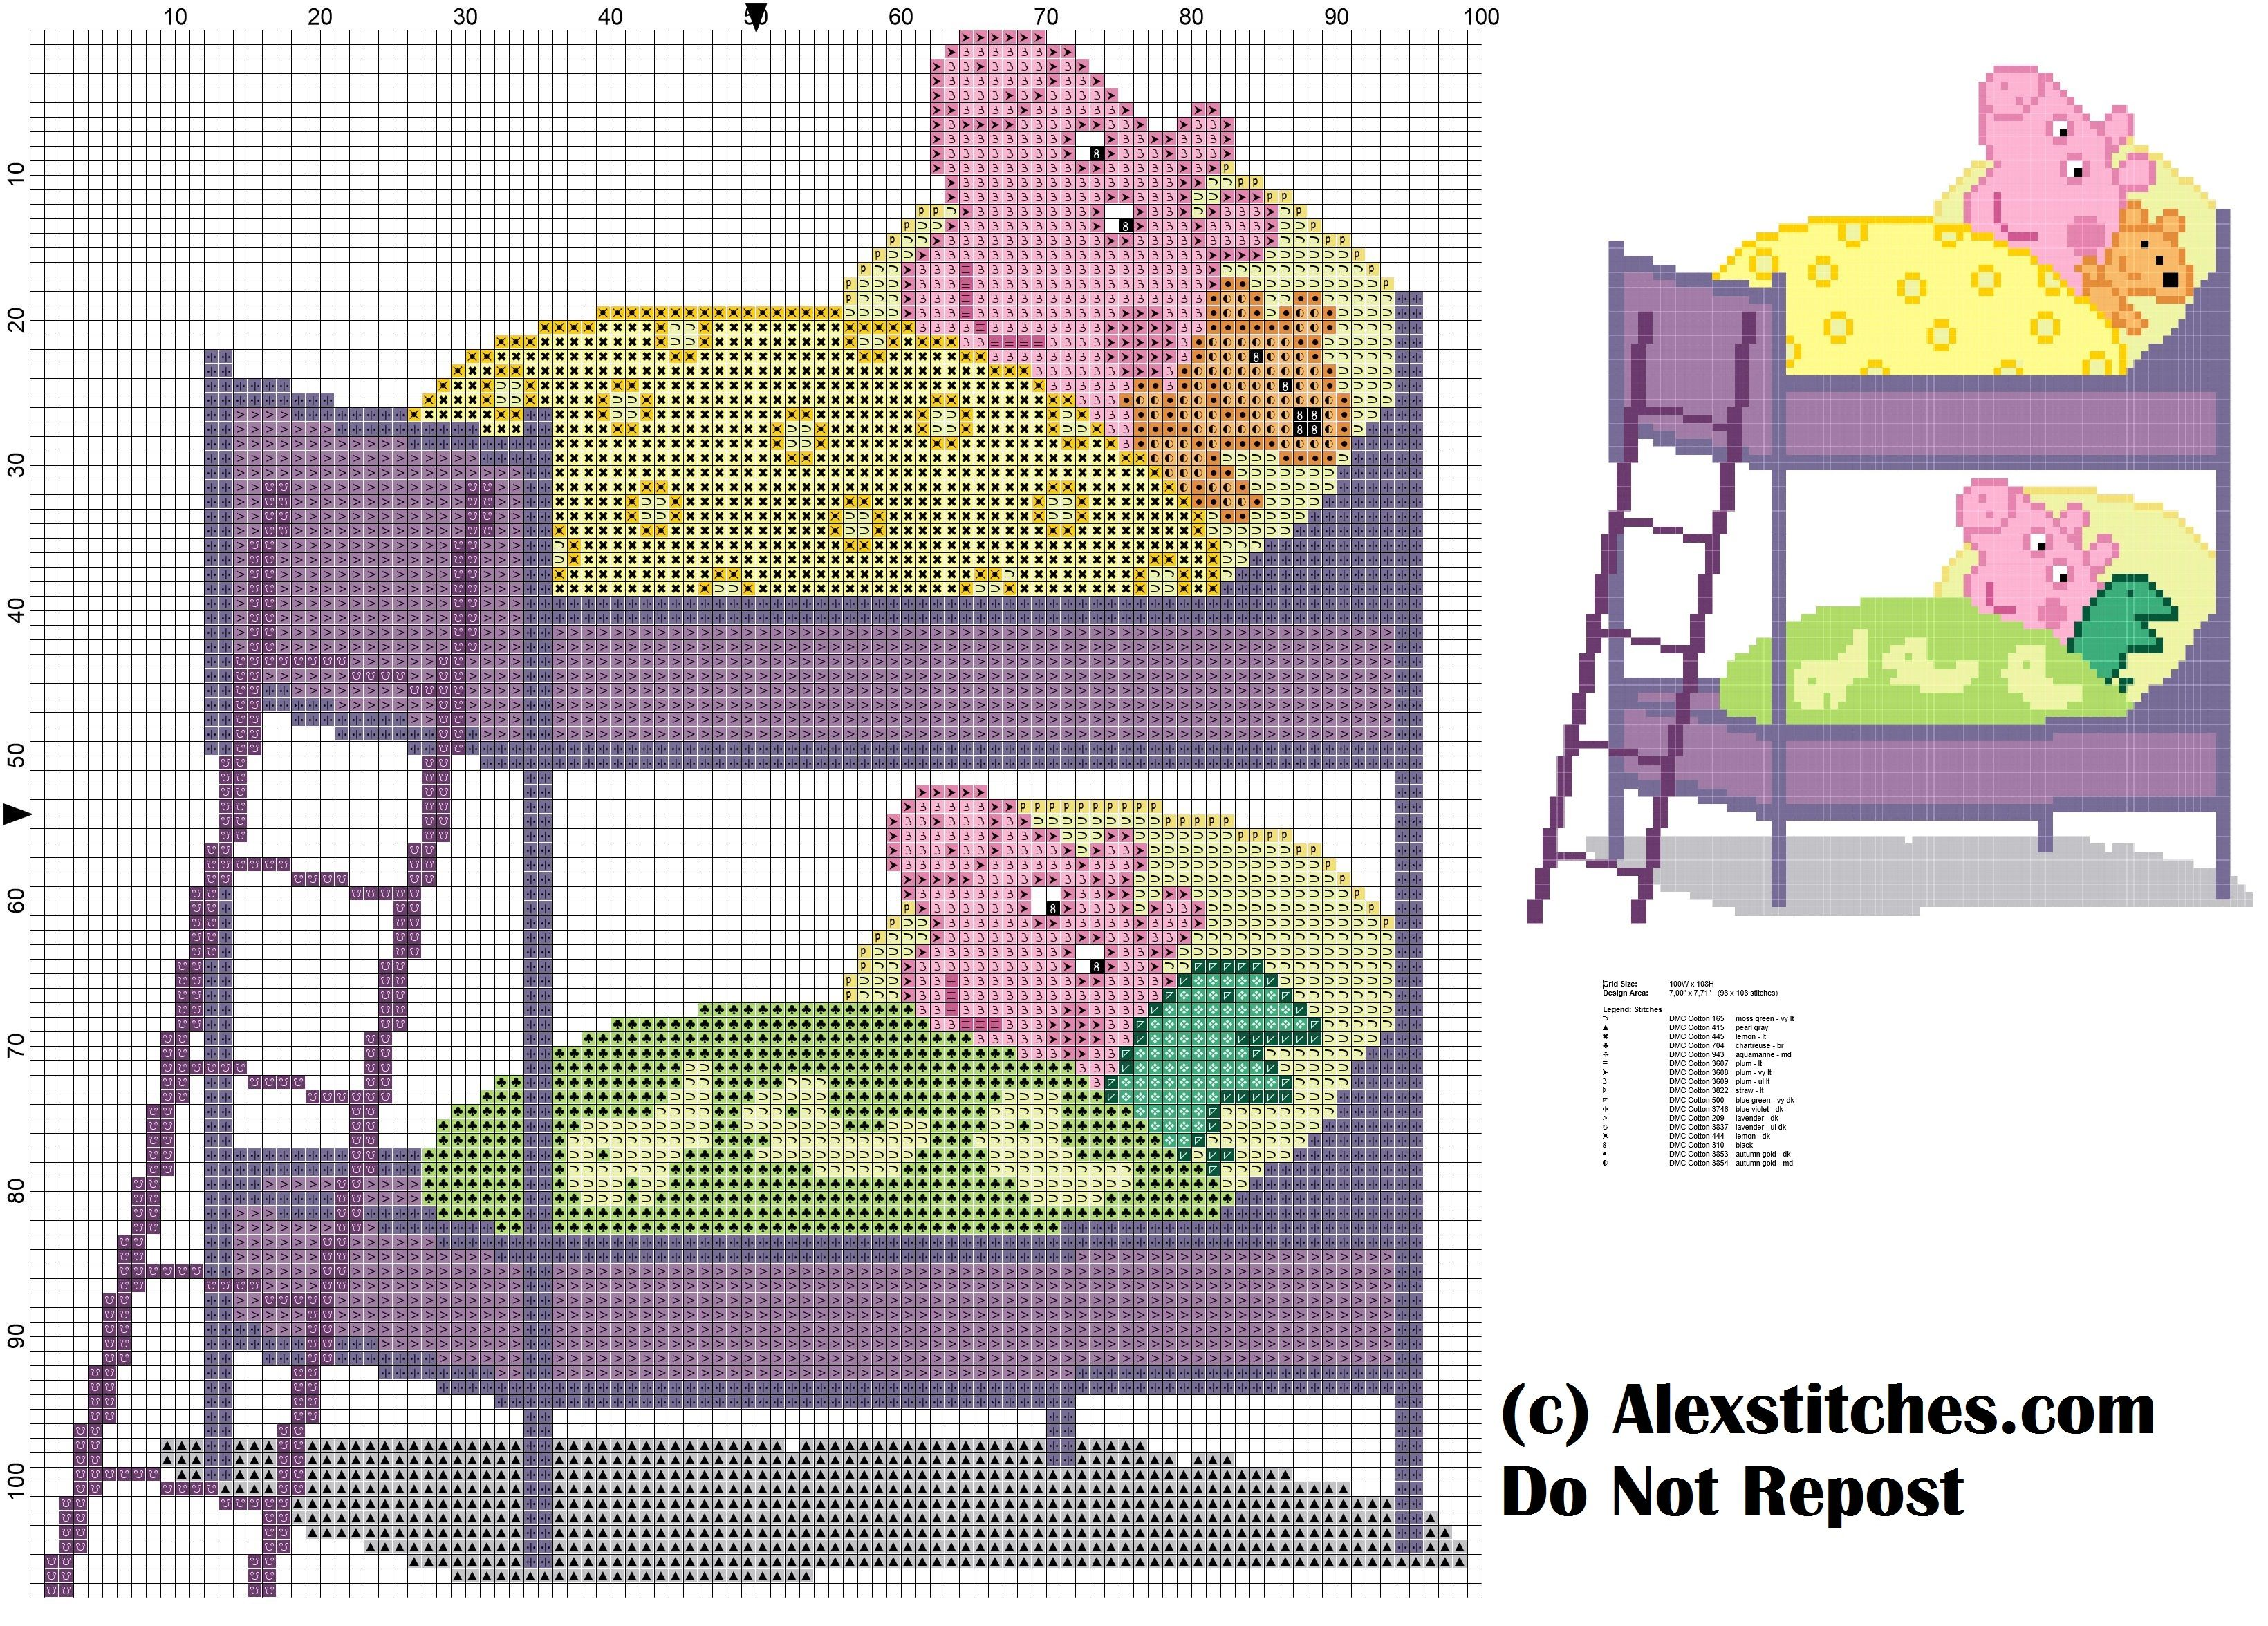 peppa pig and sleep in bunk bed cross stitch